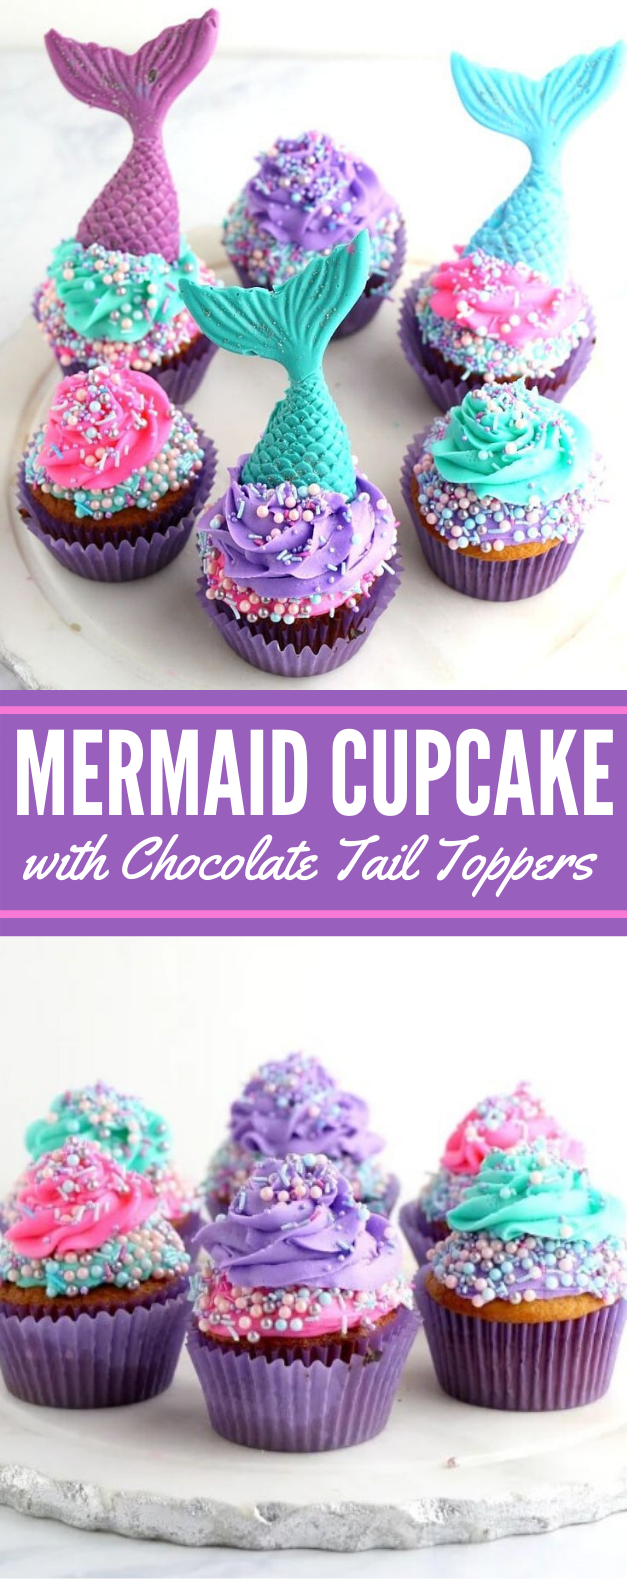 MERMAID CUPCAKE RECIPE WITH CHOCOLATE TAIL TOPPERS #desserts #cake #sweets #cupcake #partycake